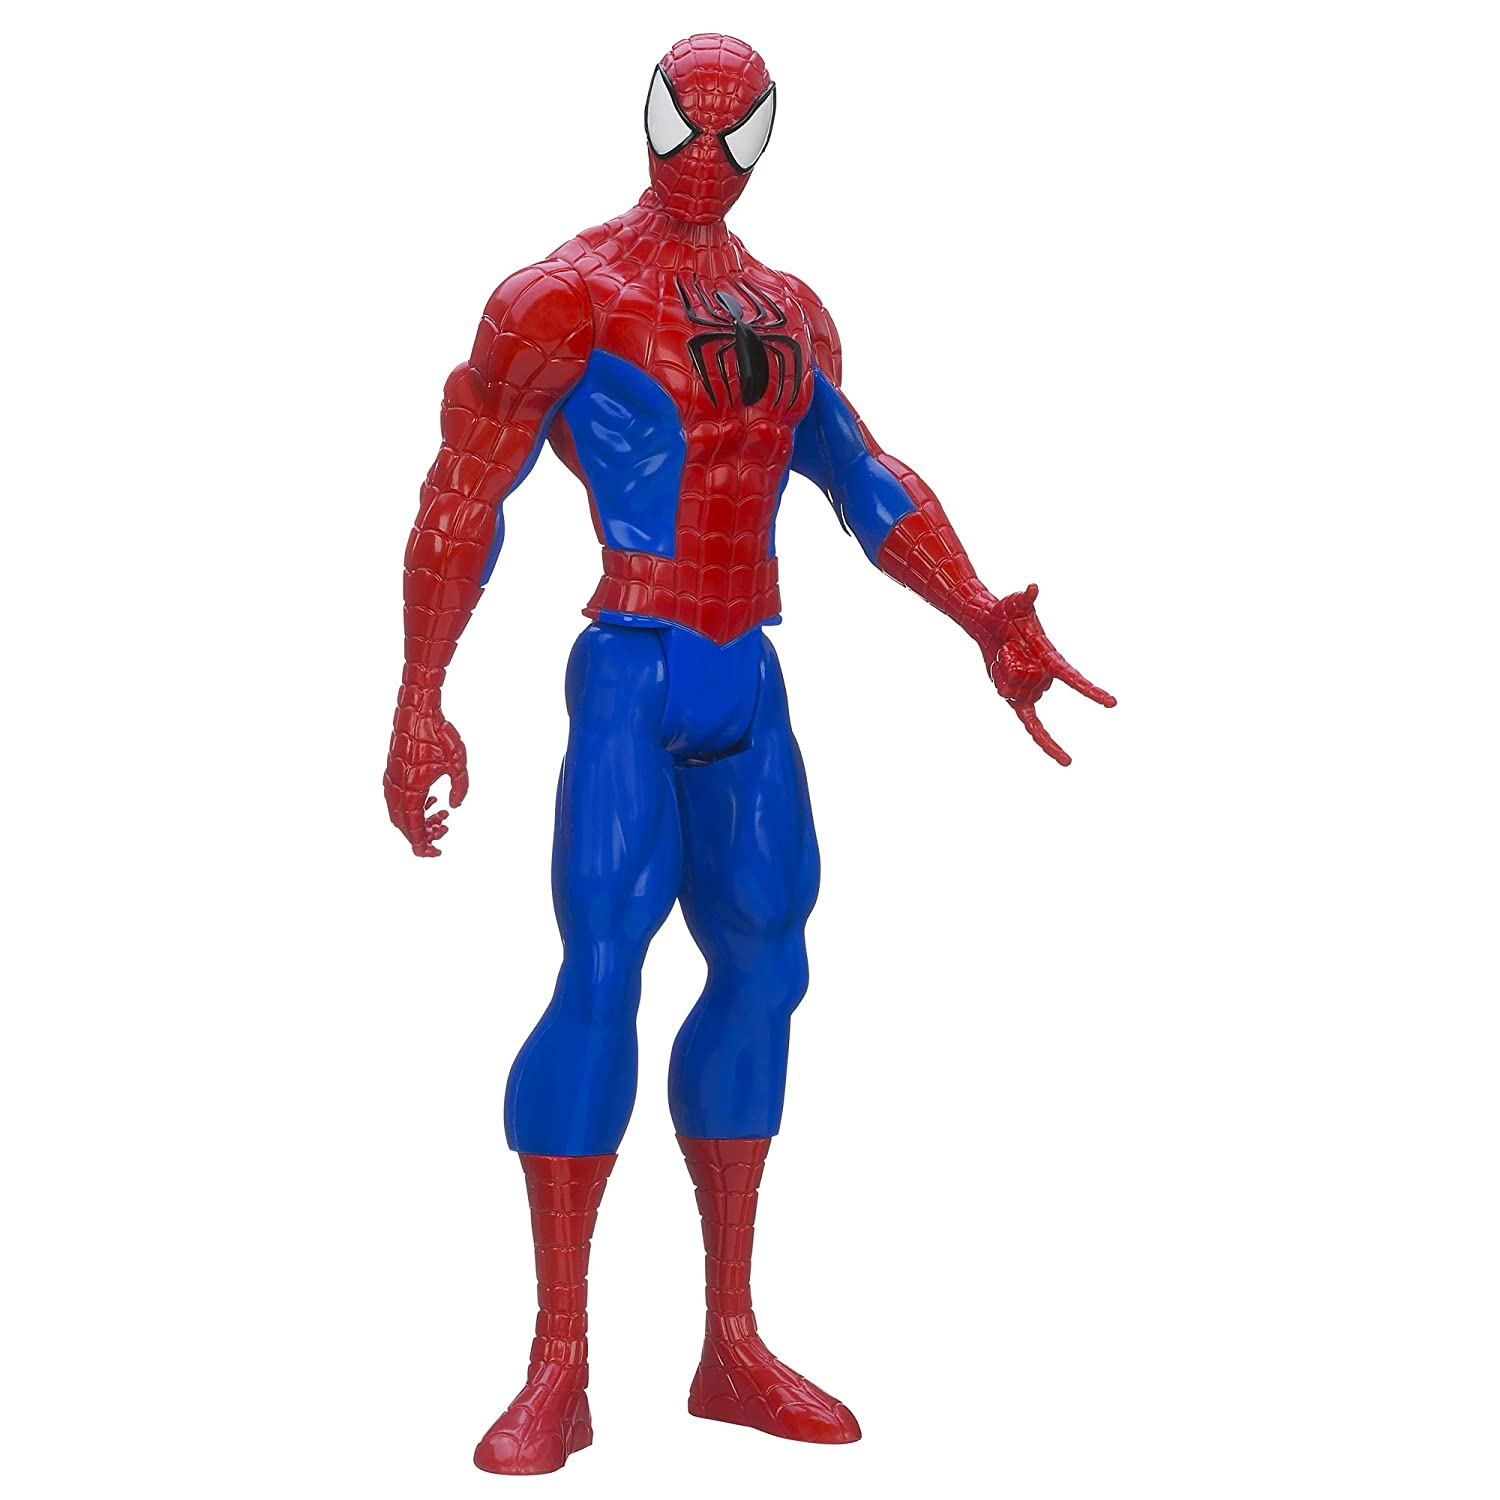 Spider-Man Marvel Ultimate Titan Hero Series Figure, 12-Inch Hasbro A1517